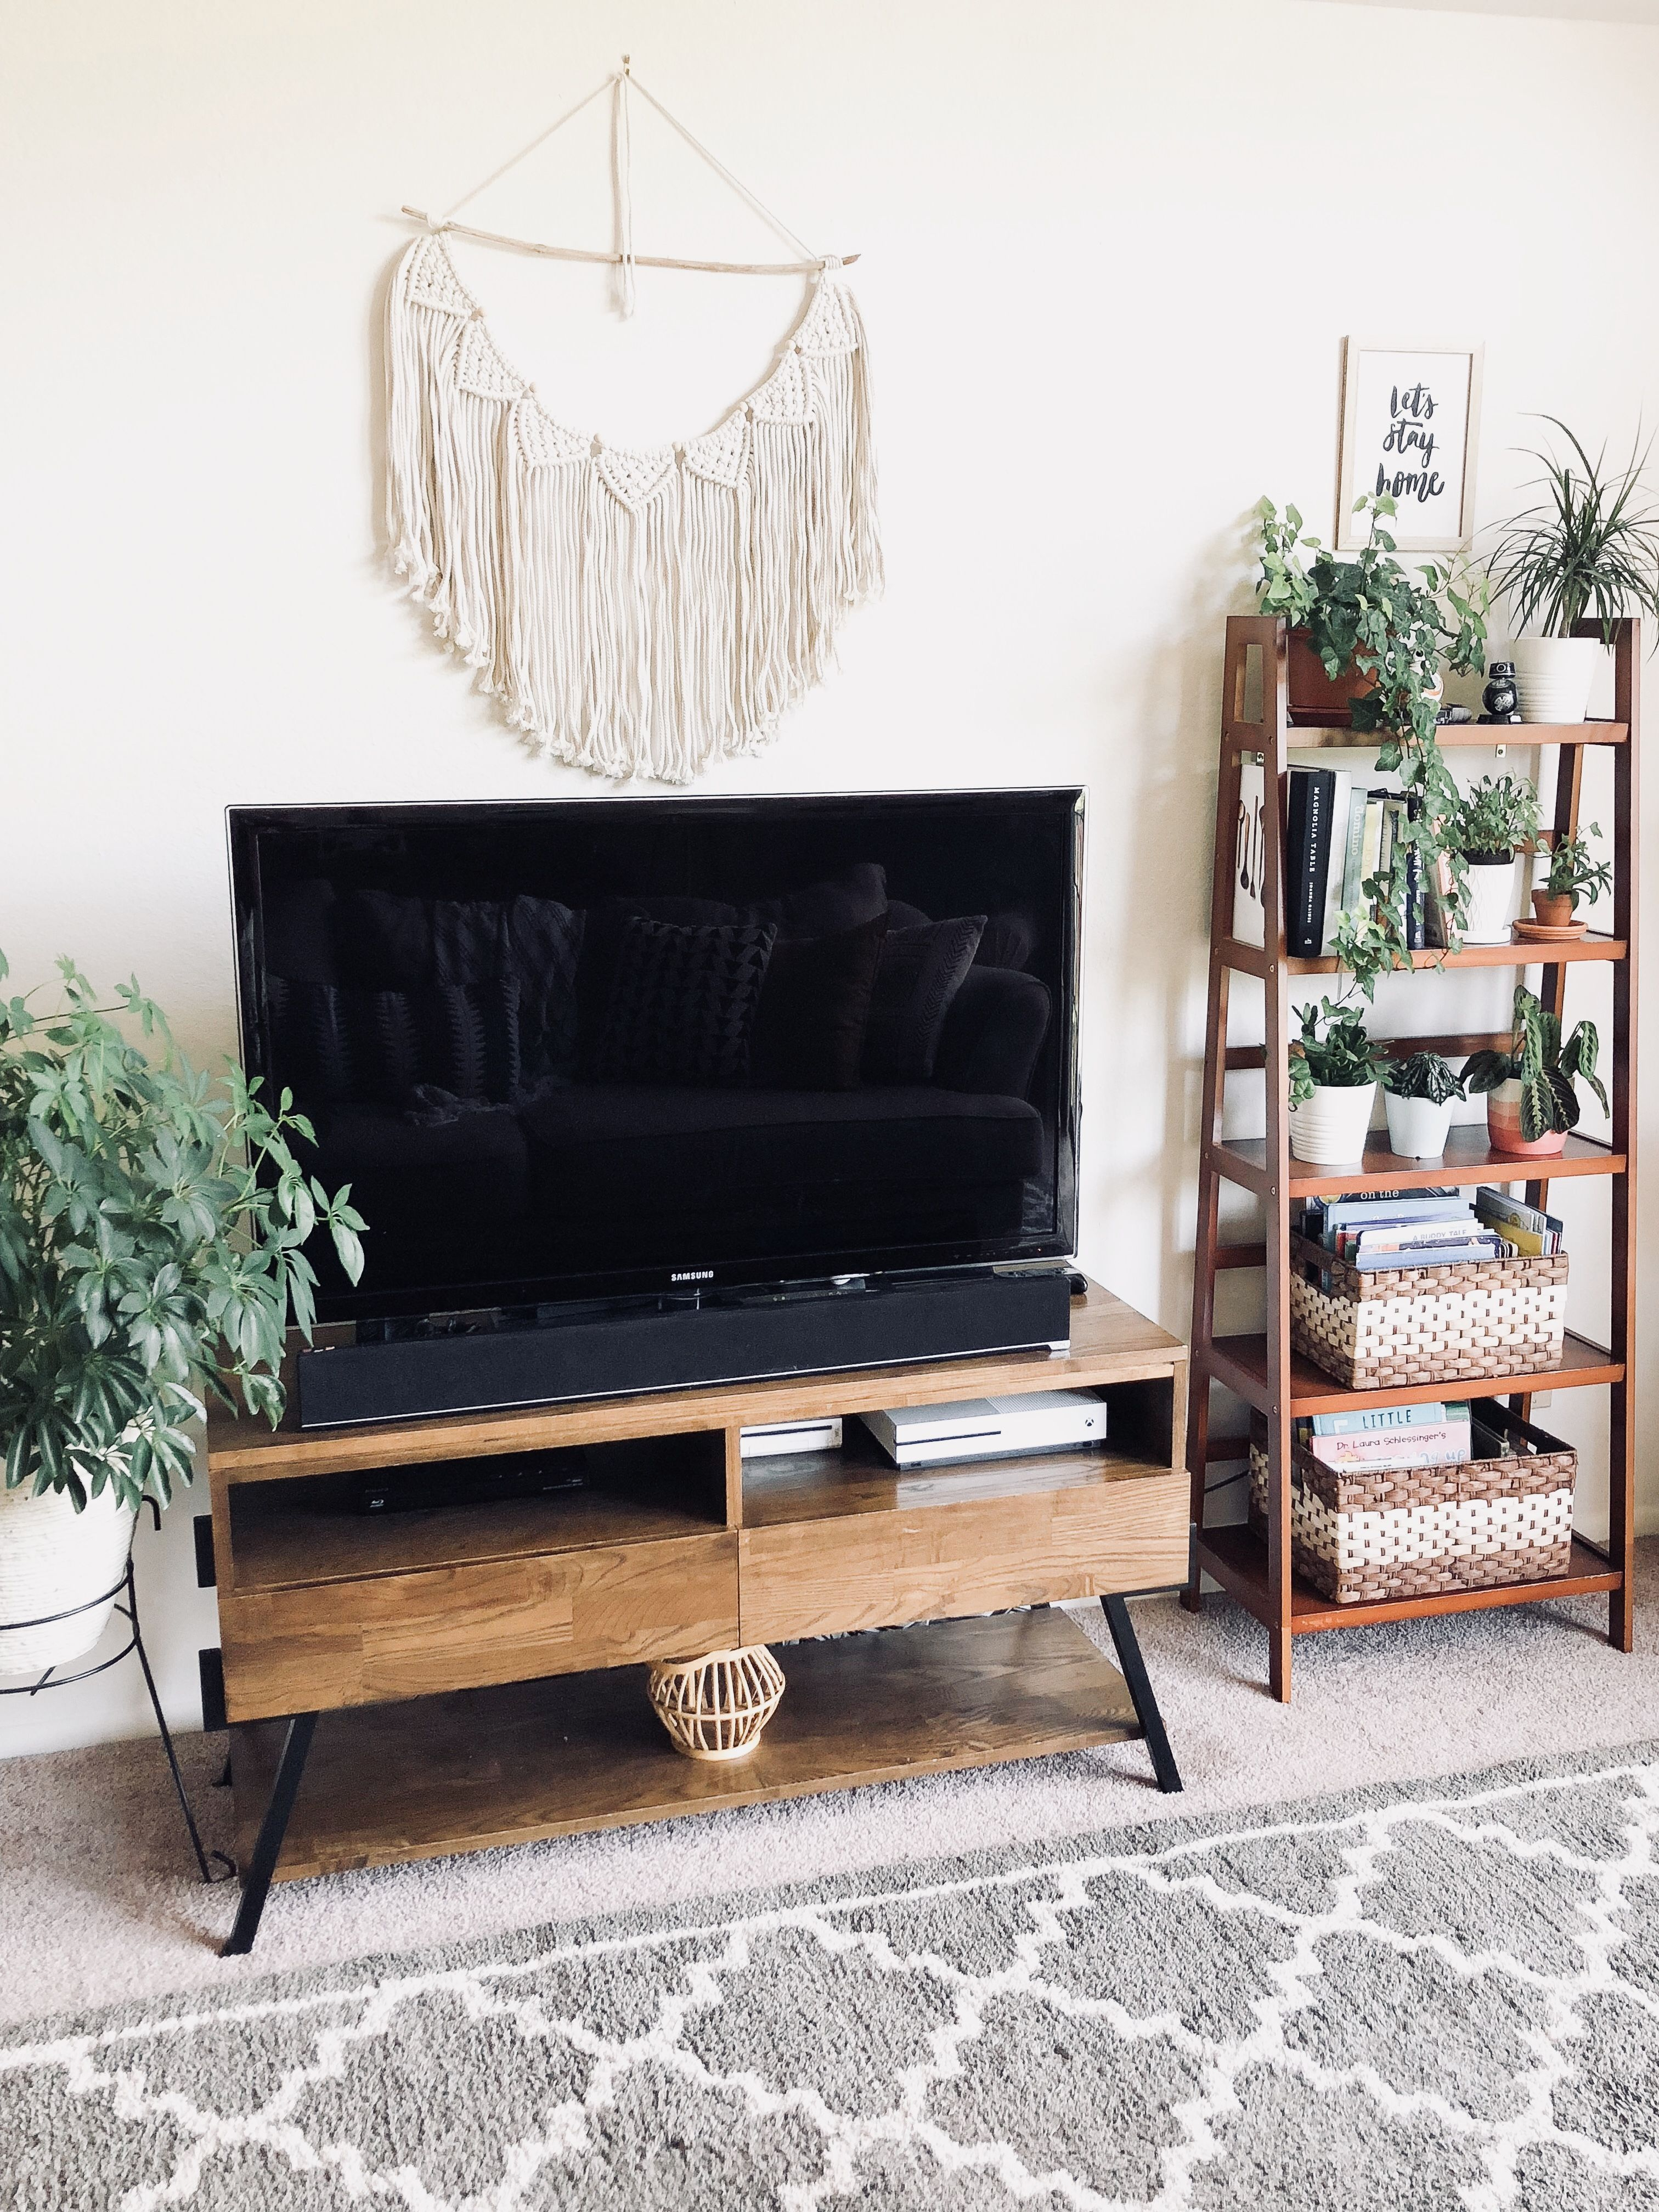 Apartment Living Room images